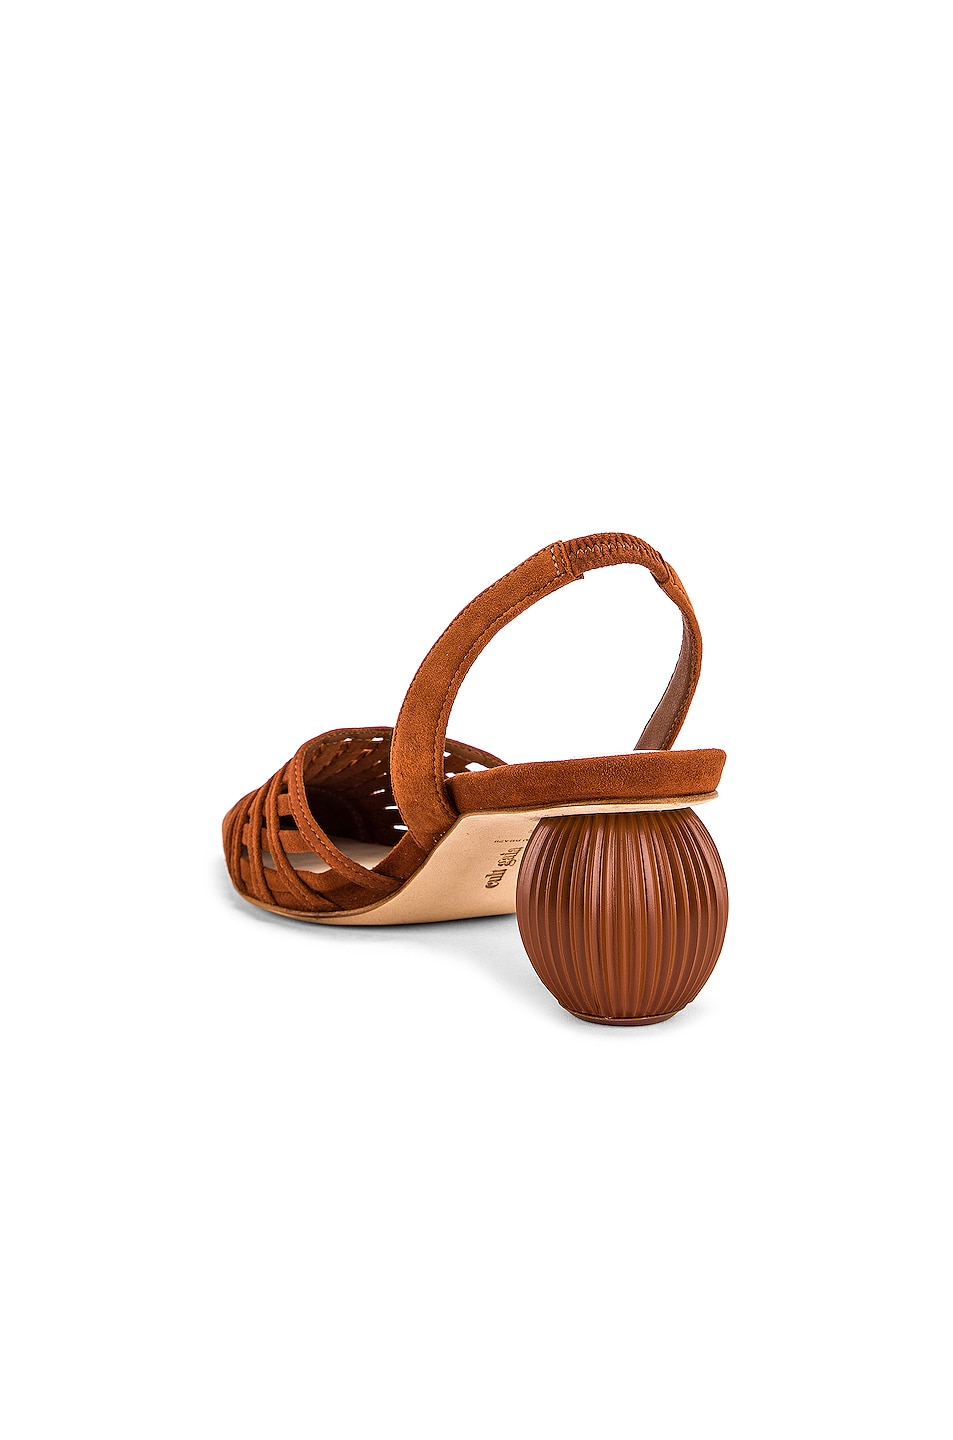 Image 3 of Cult Gaia Keri Slingback Heel in Nut